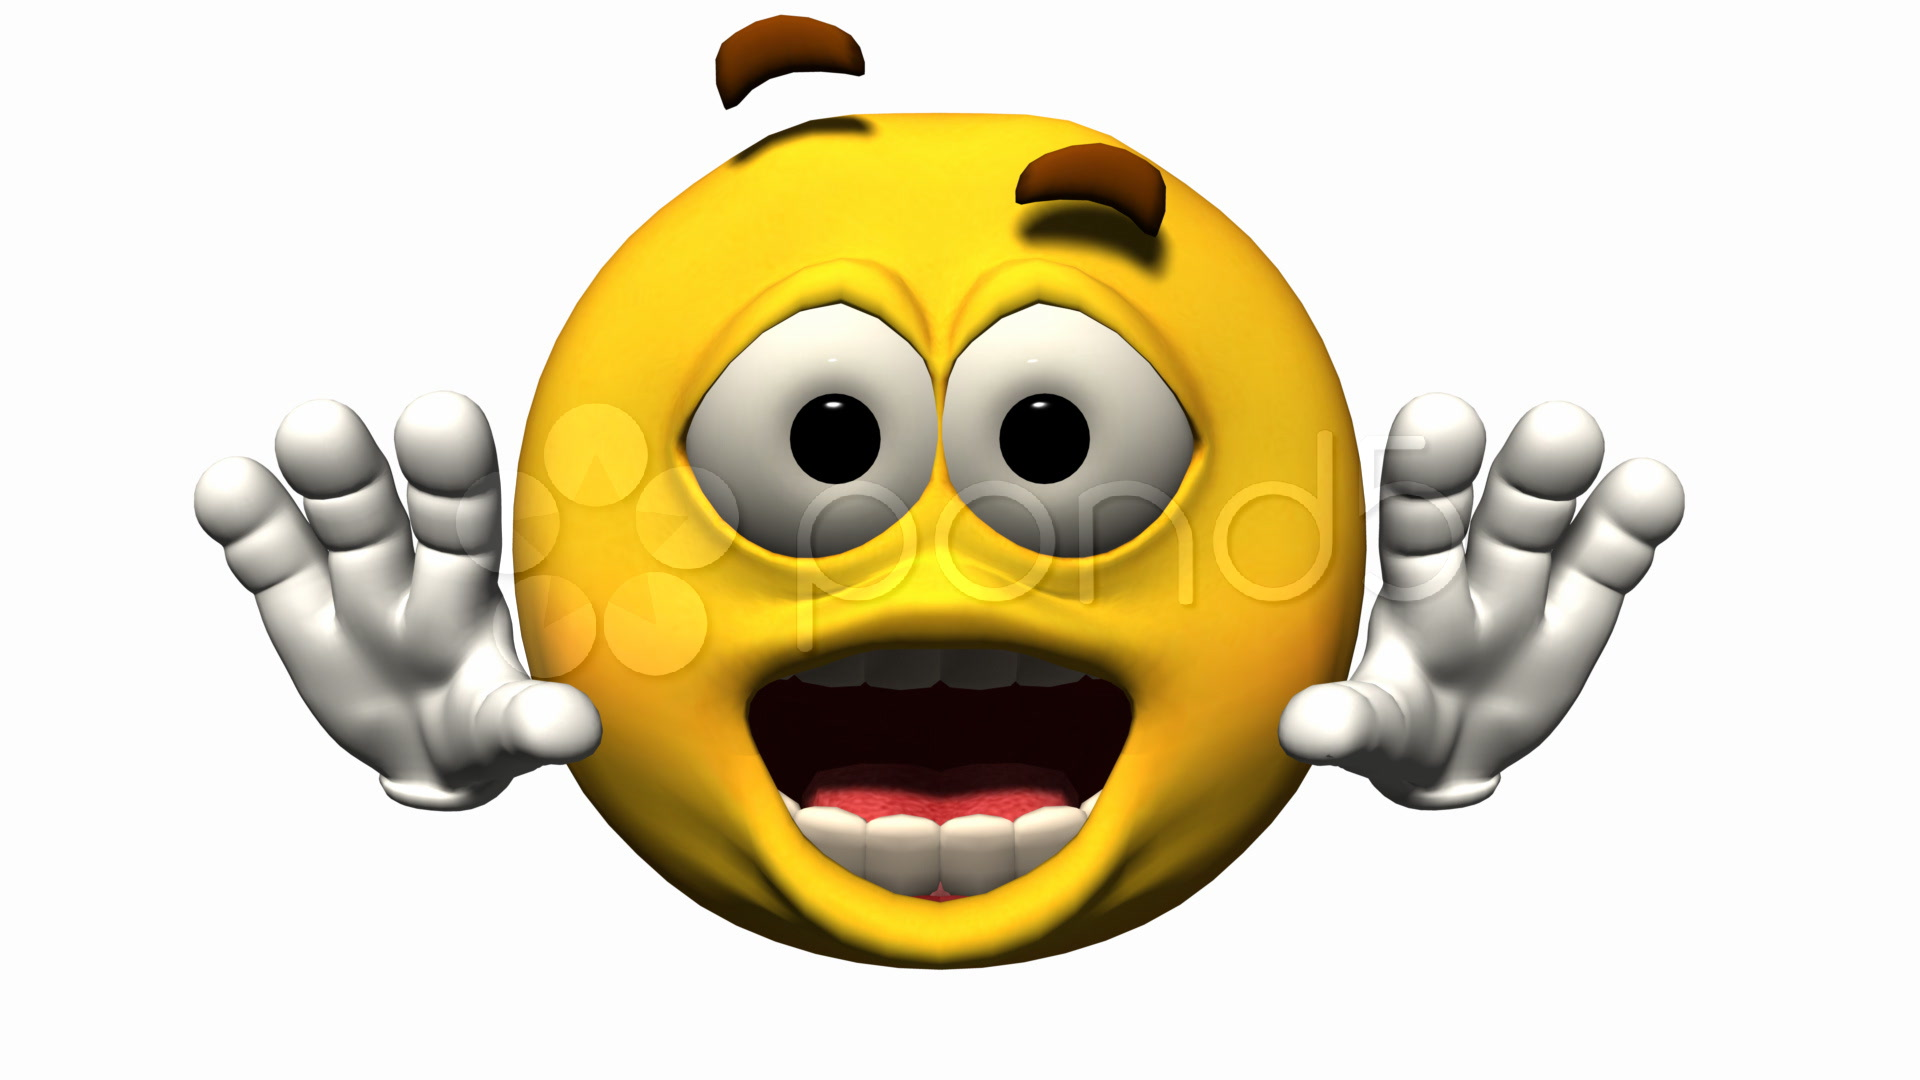 14 Animated Emoticons For Same Time Images 3d Animated